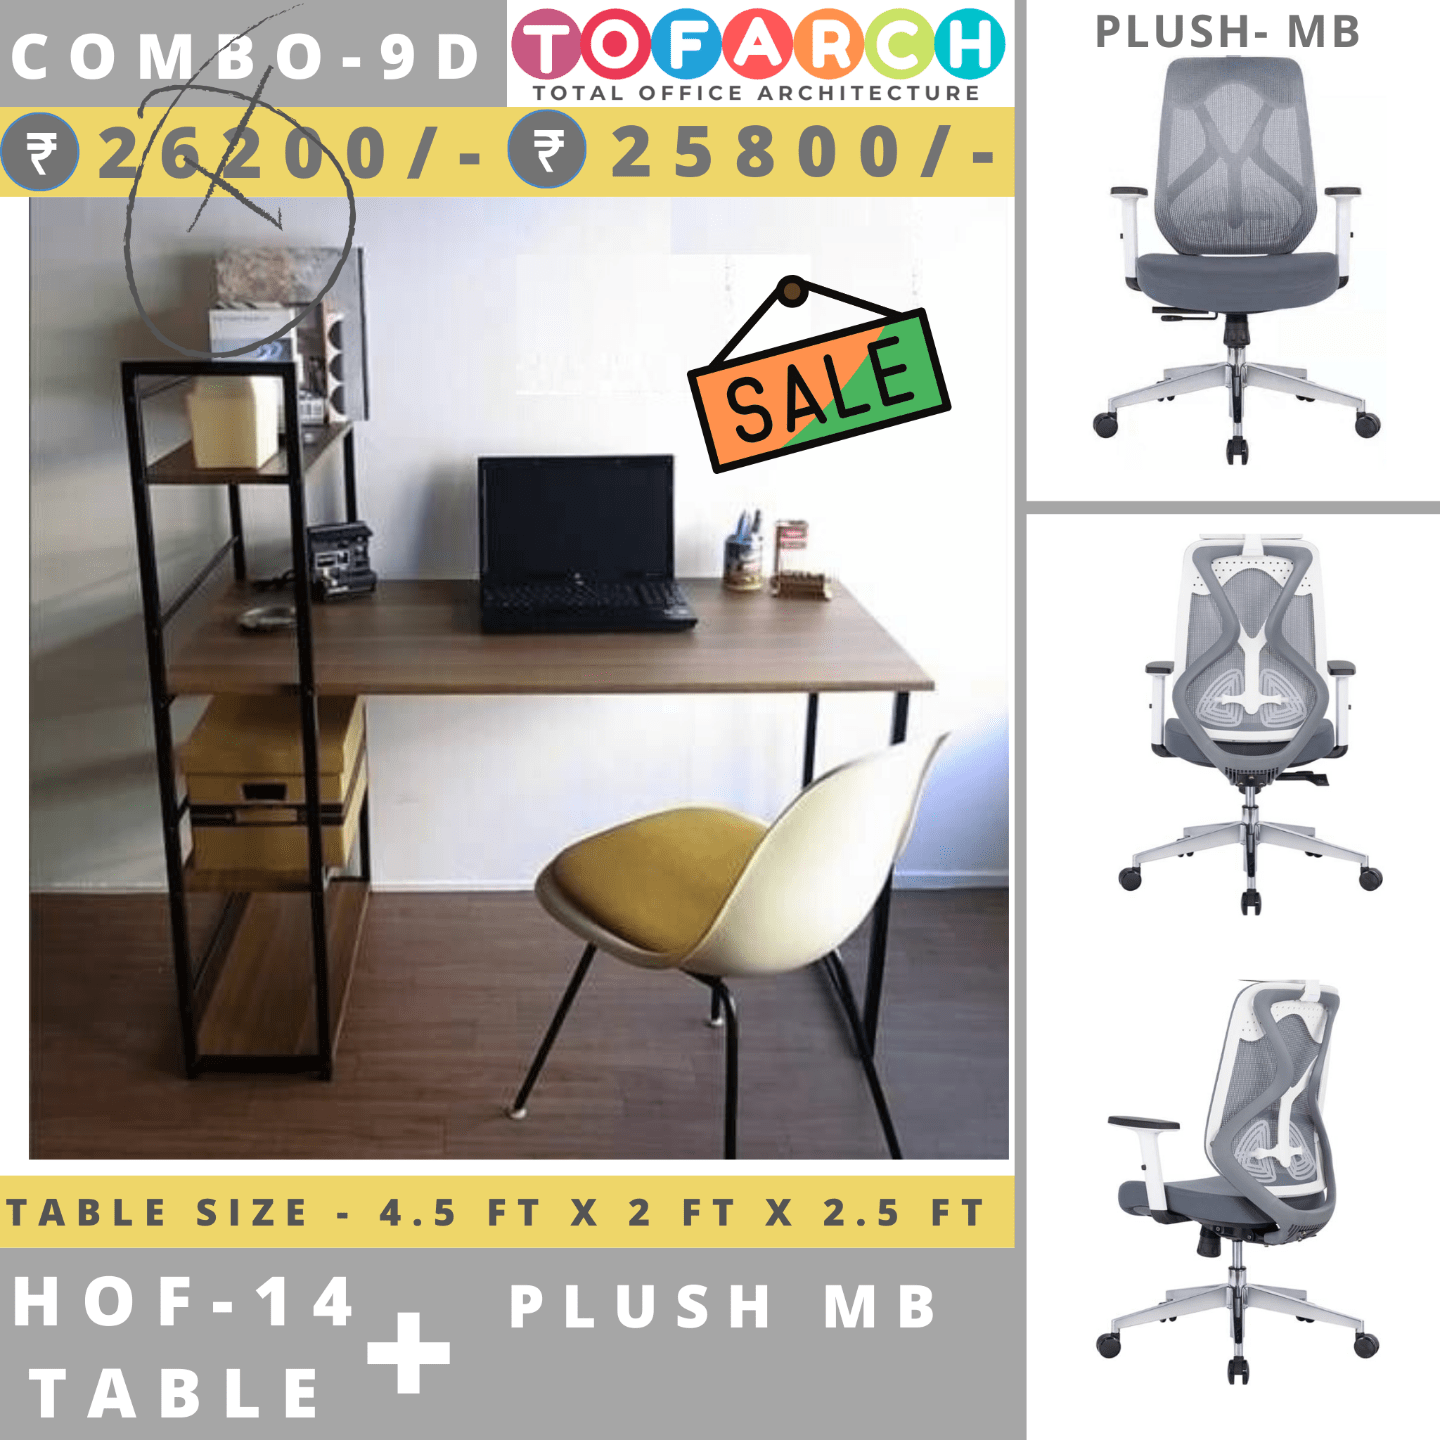 Table Chair Combo - 9D HOF 14 Table + PLUSH MB Chair